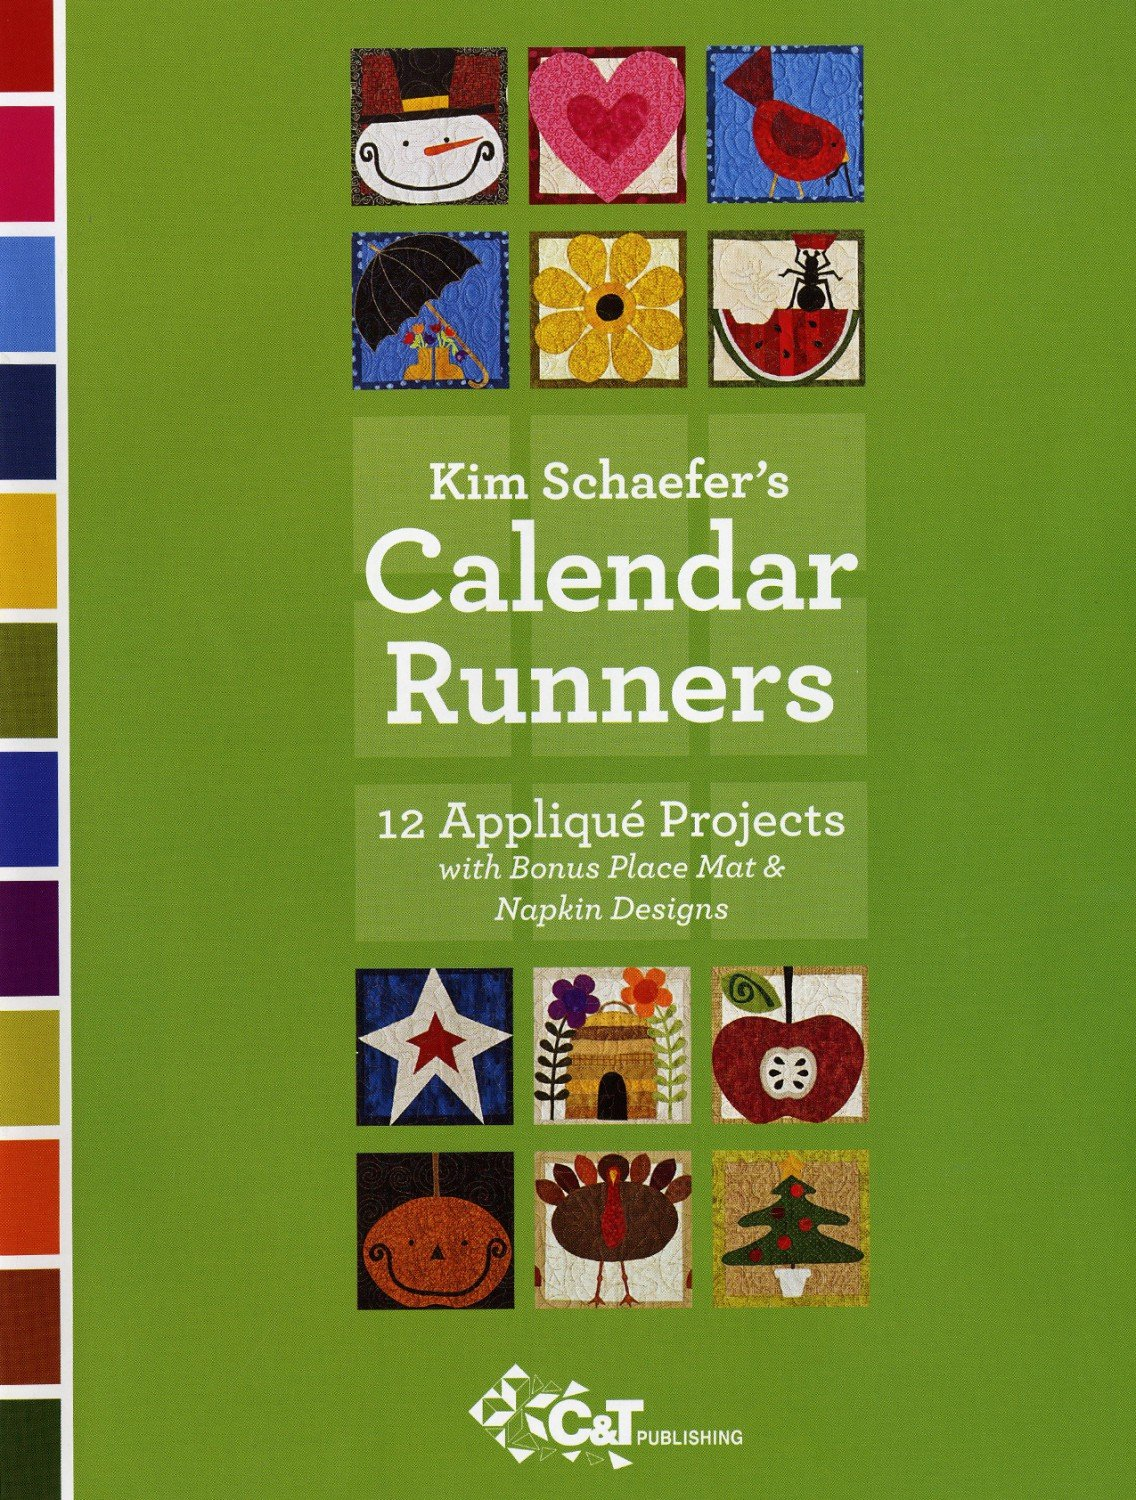 Kim Schaefer's Calendar Runners - 10928 - MAY BE RESTOCKED UPON REQUEST